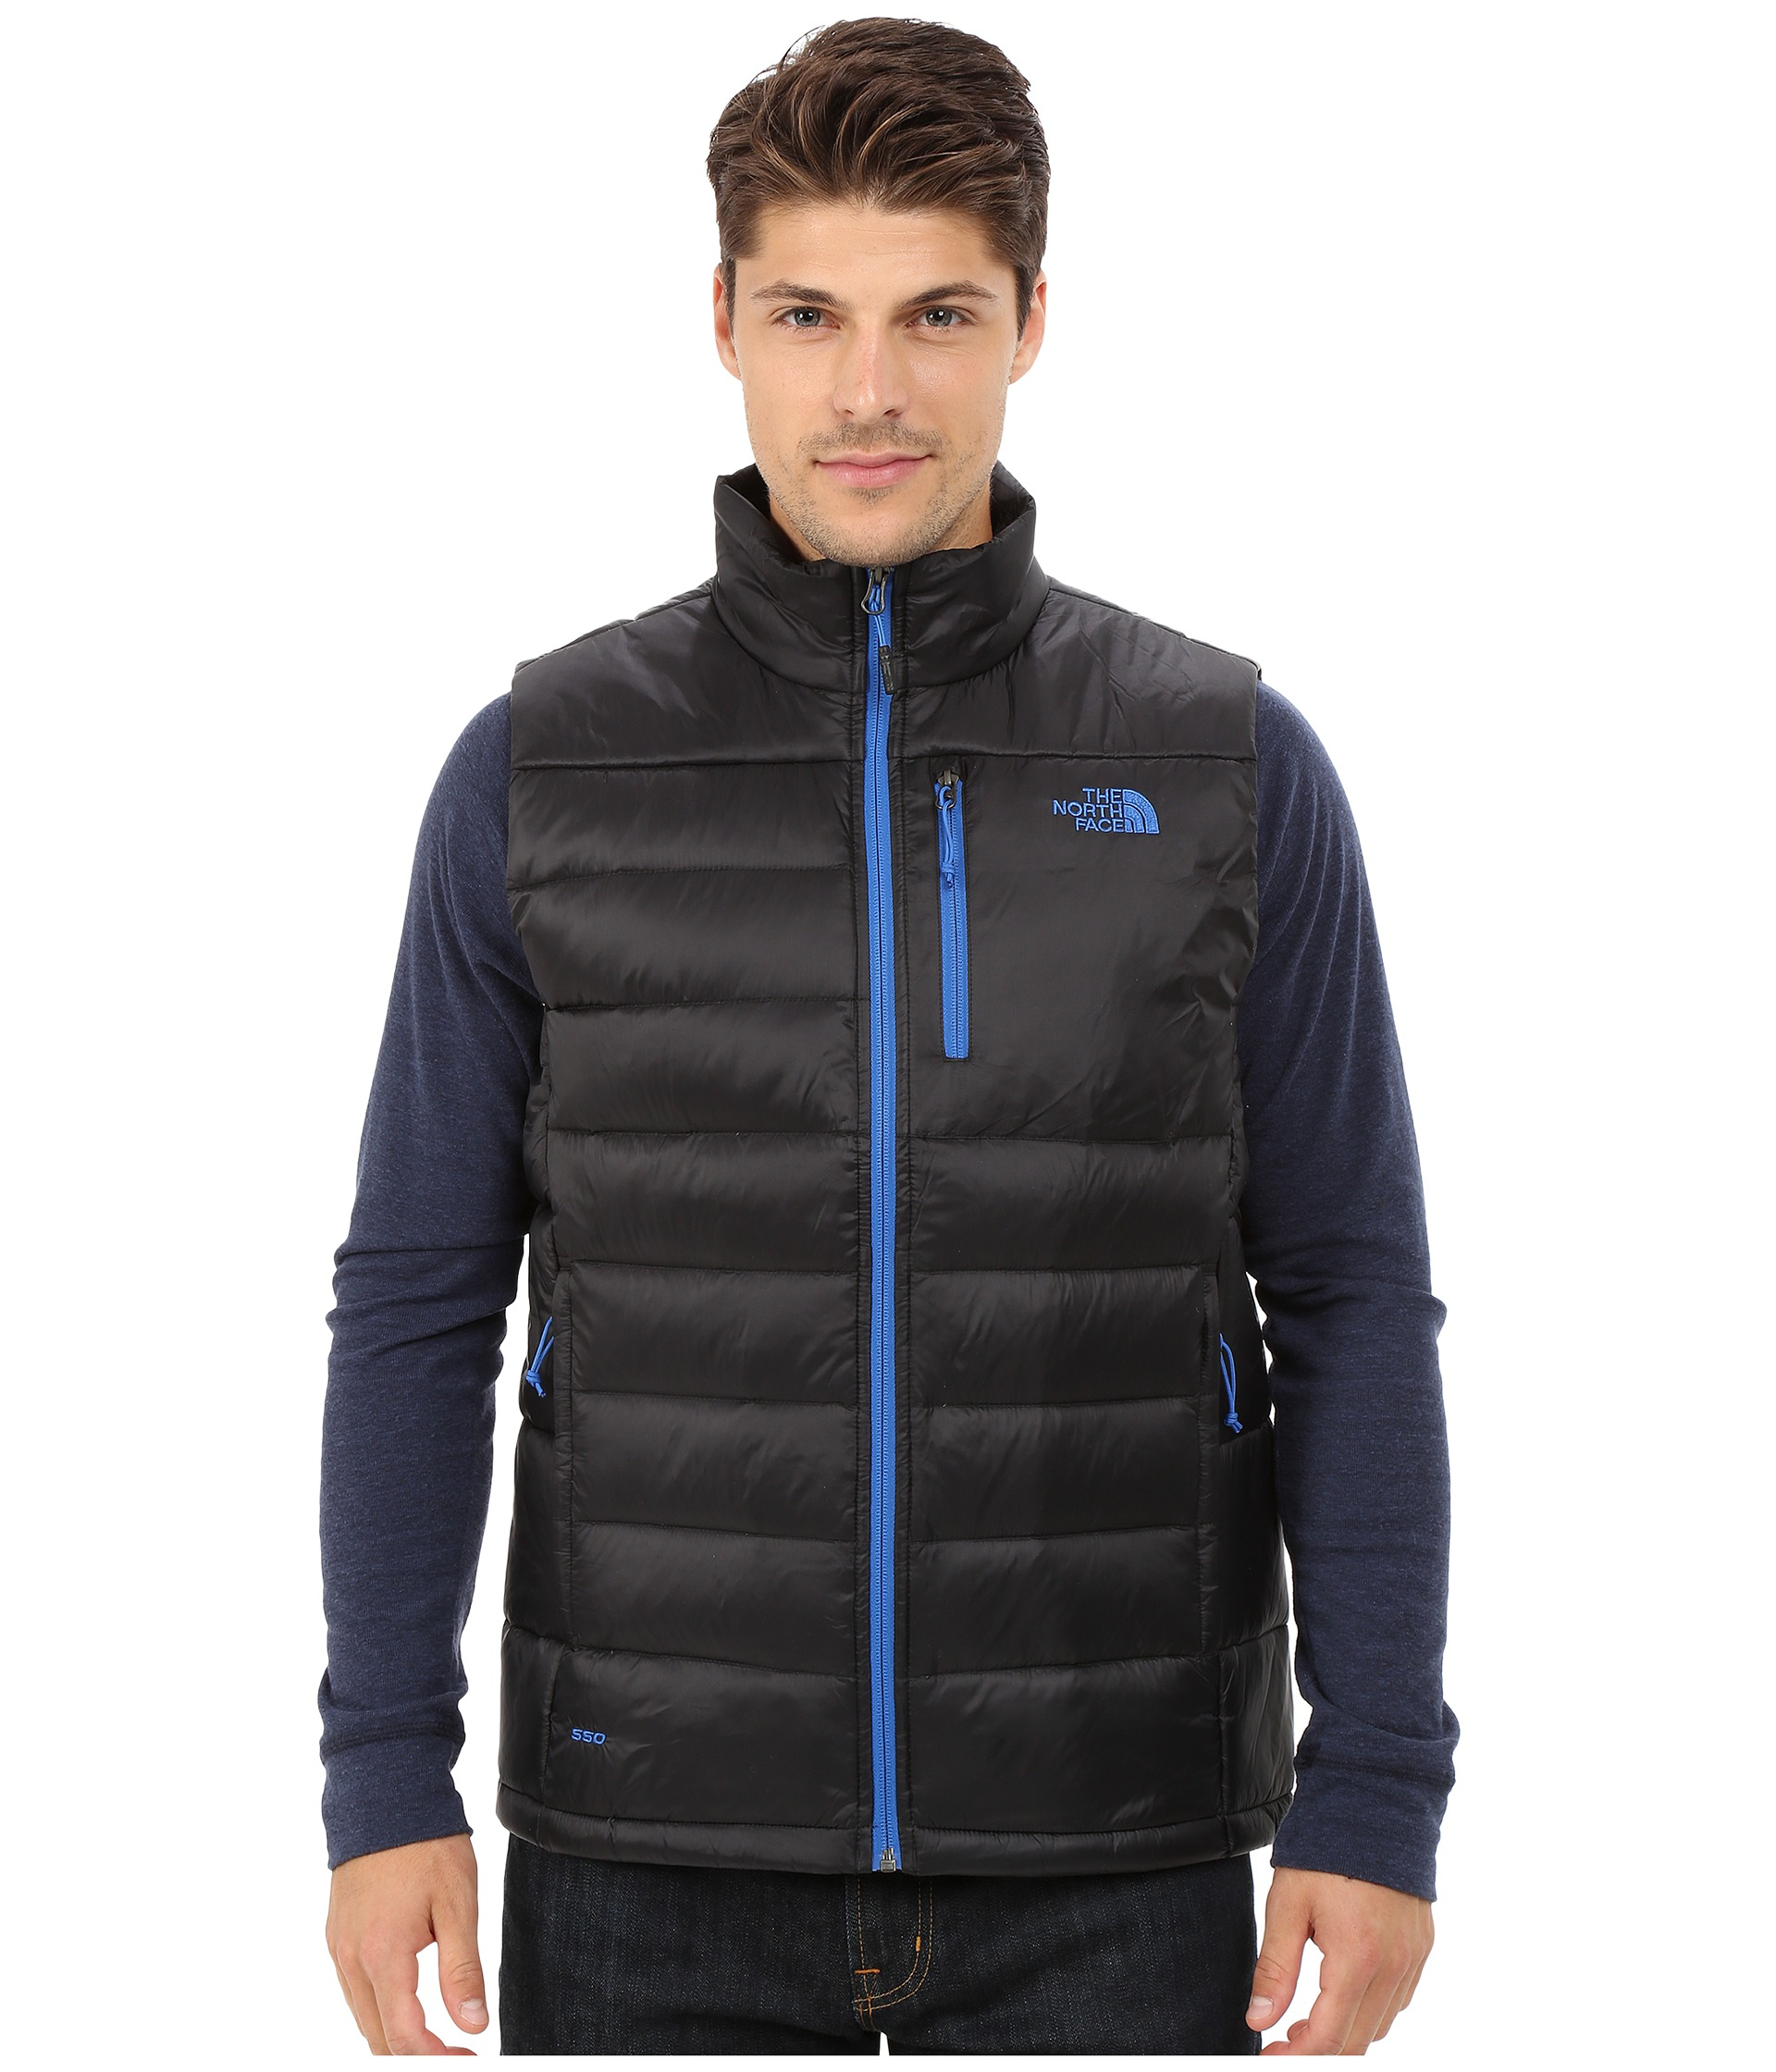 The north face novelty aconcagua vest antiques arms and armor historical investments inc